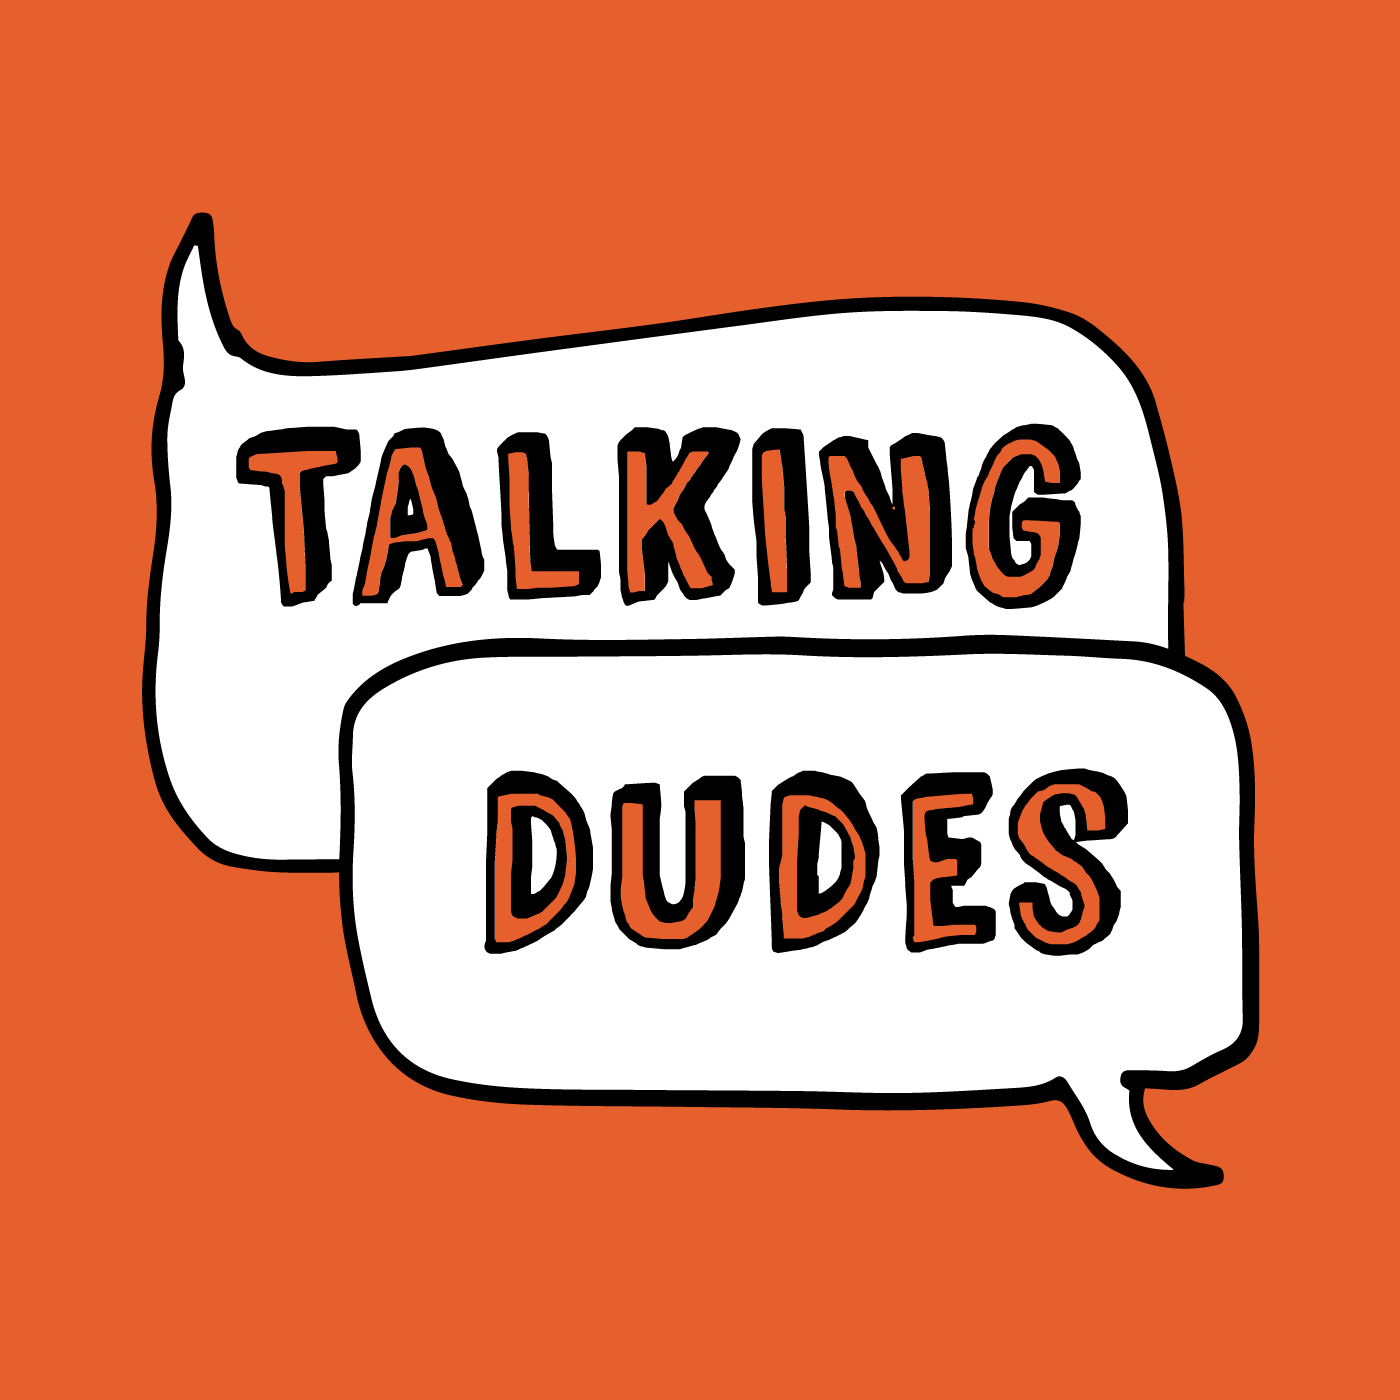 Talking Dudes logo